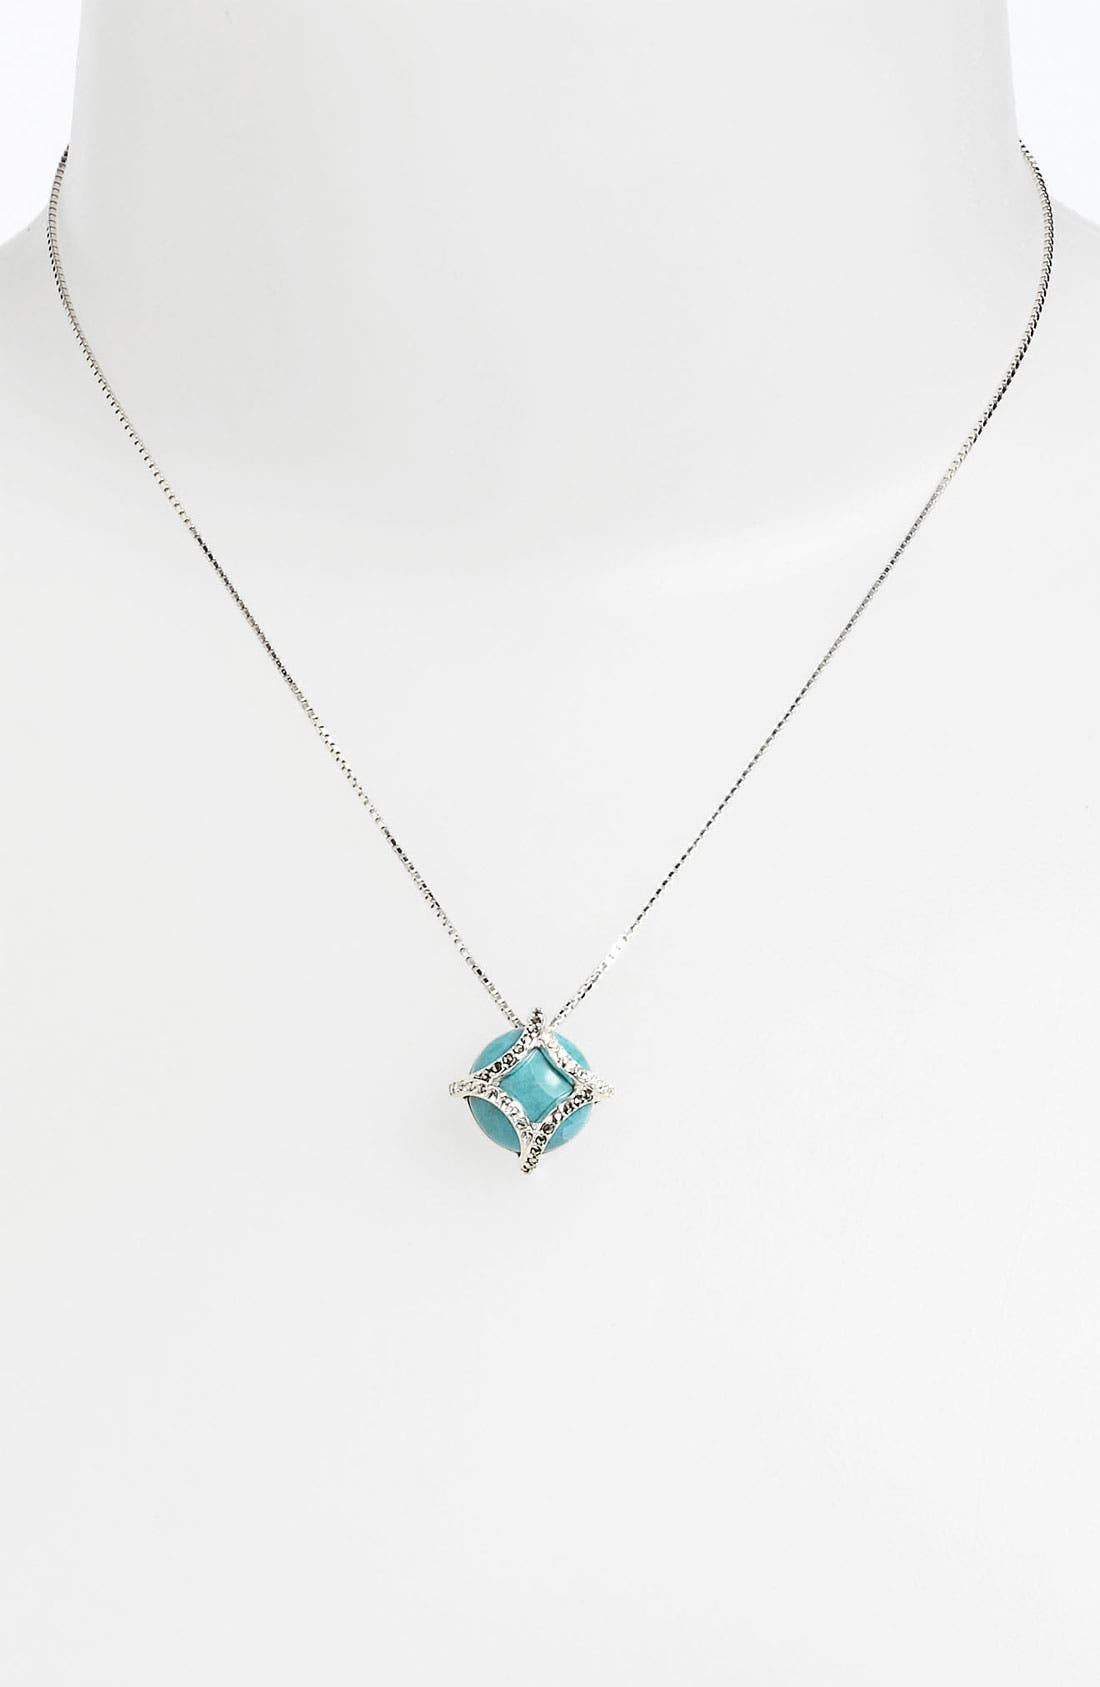 Main Image - Judith Jack 'Turq Matrix' Small Pendant Necklace